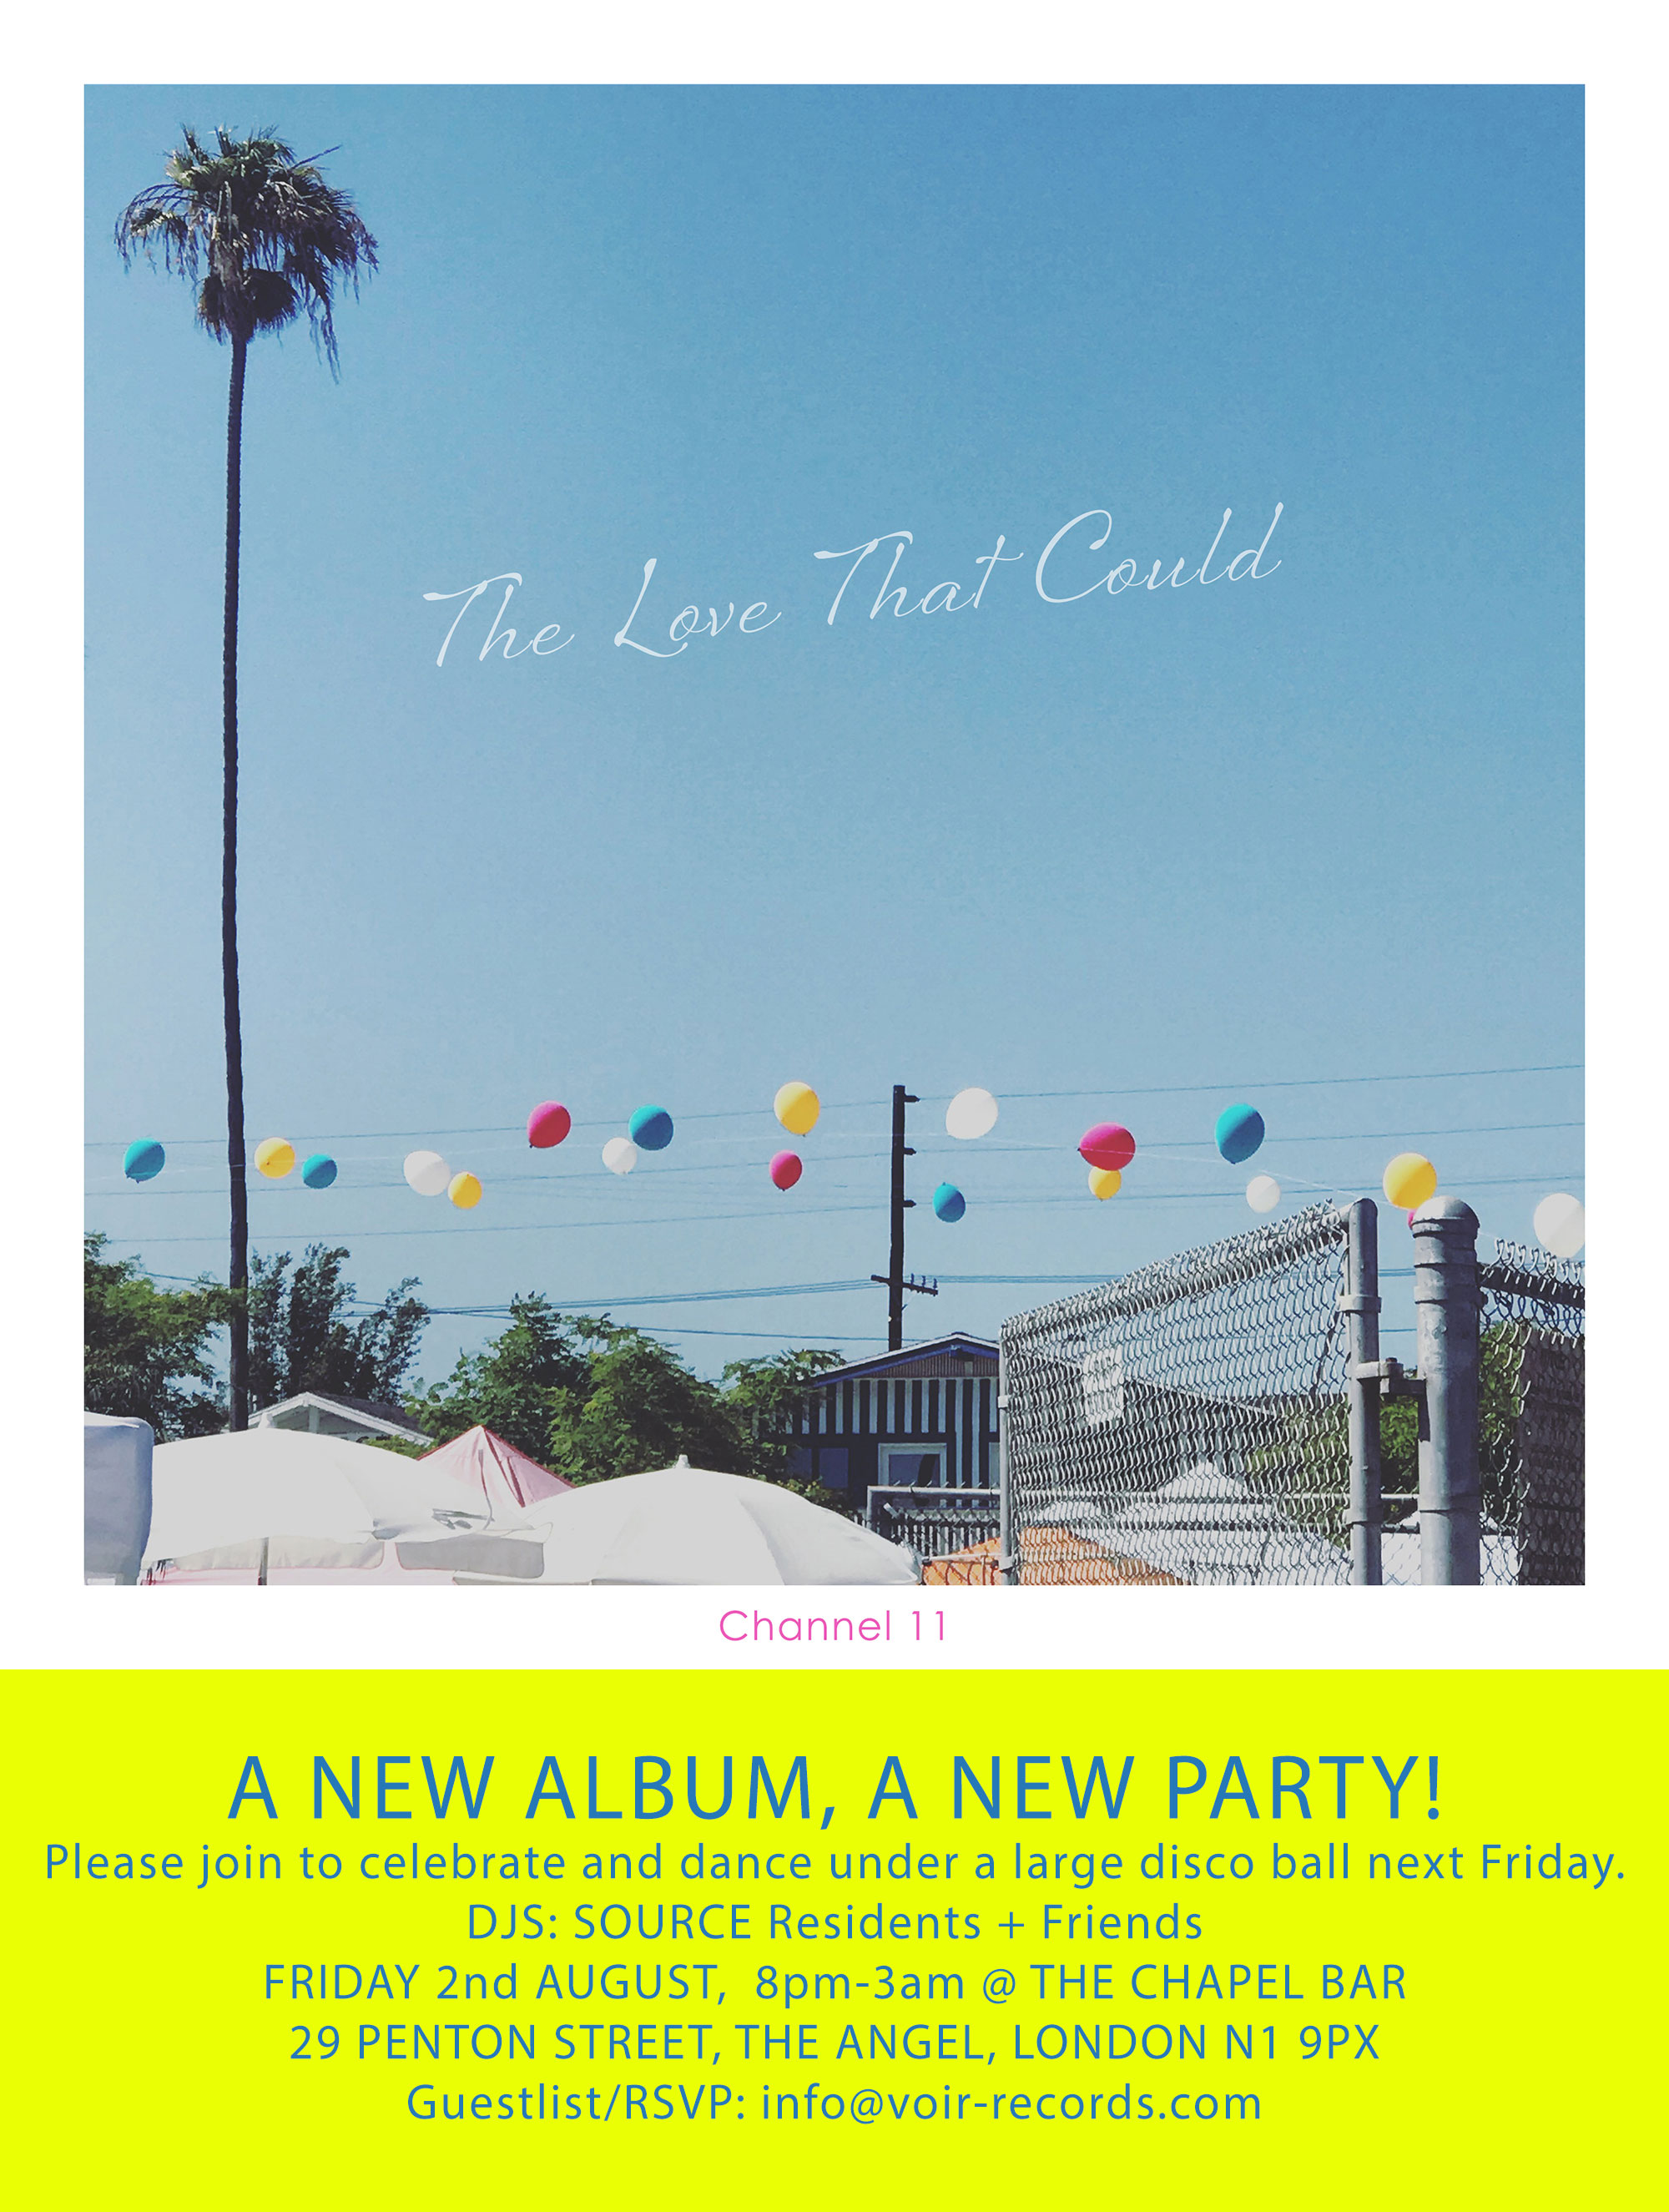 The-Love-That-Could-Launch-Party-Invite.jpg